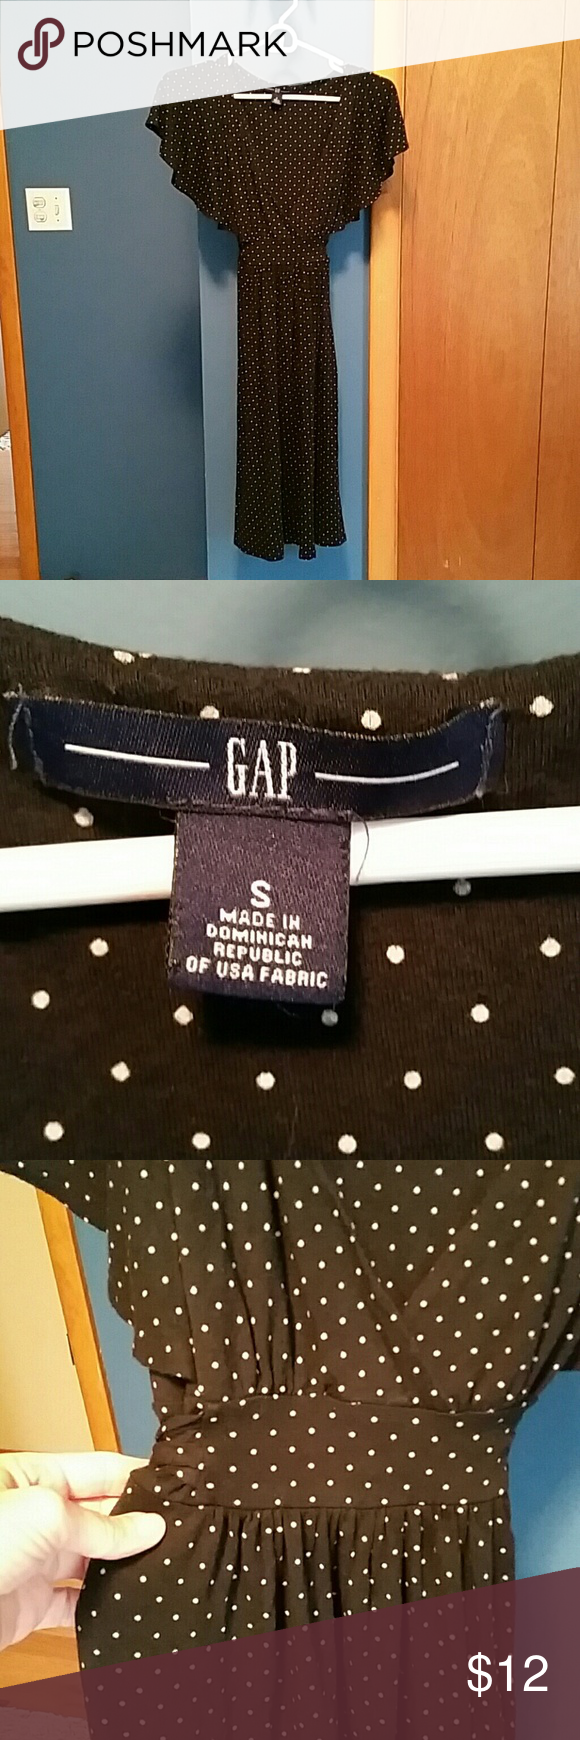 Gap dark blue and white polka dot dress In excellent condition. Belt ties around the back at the waist. Flowy cap shoulder sleeves. * GAP Dresses Midi